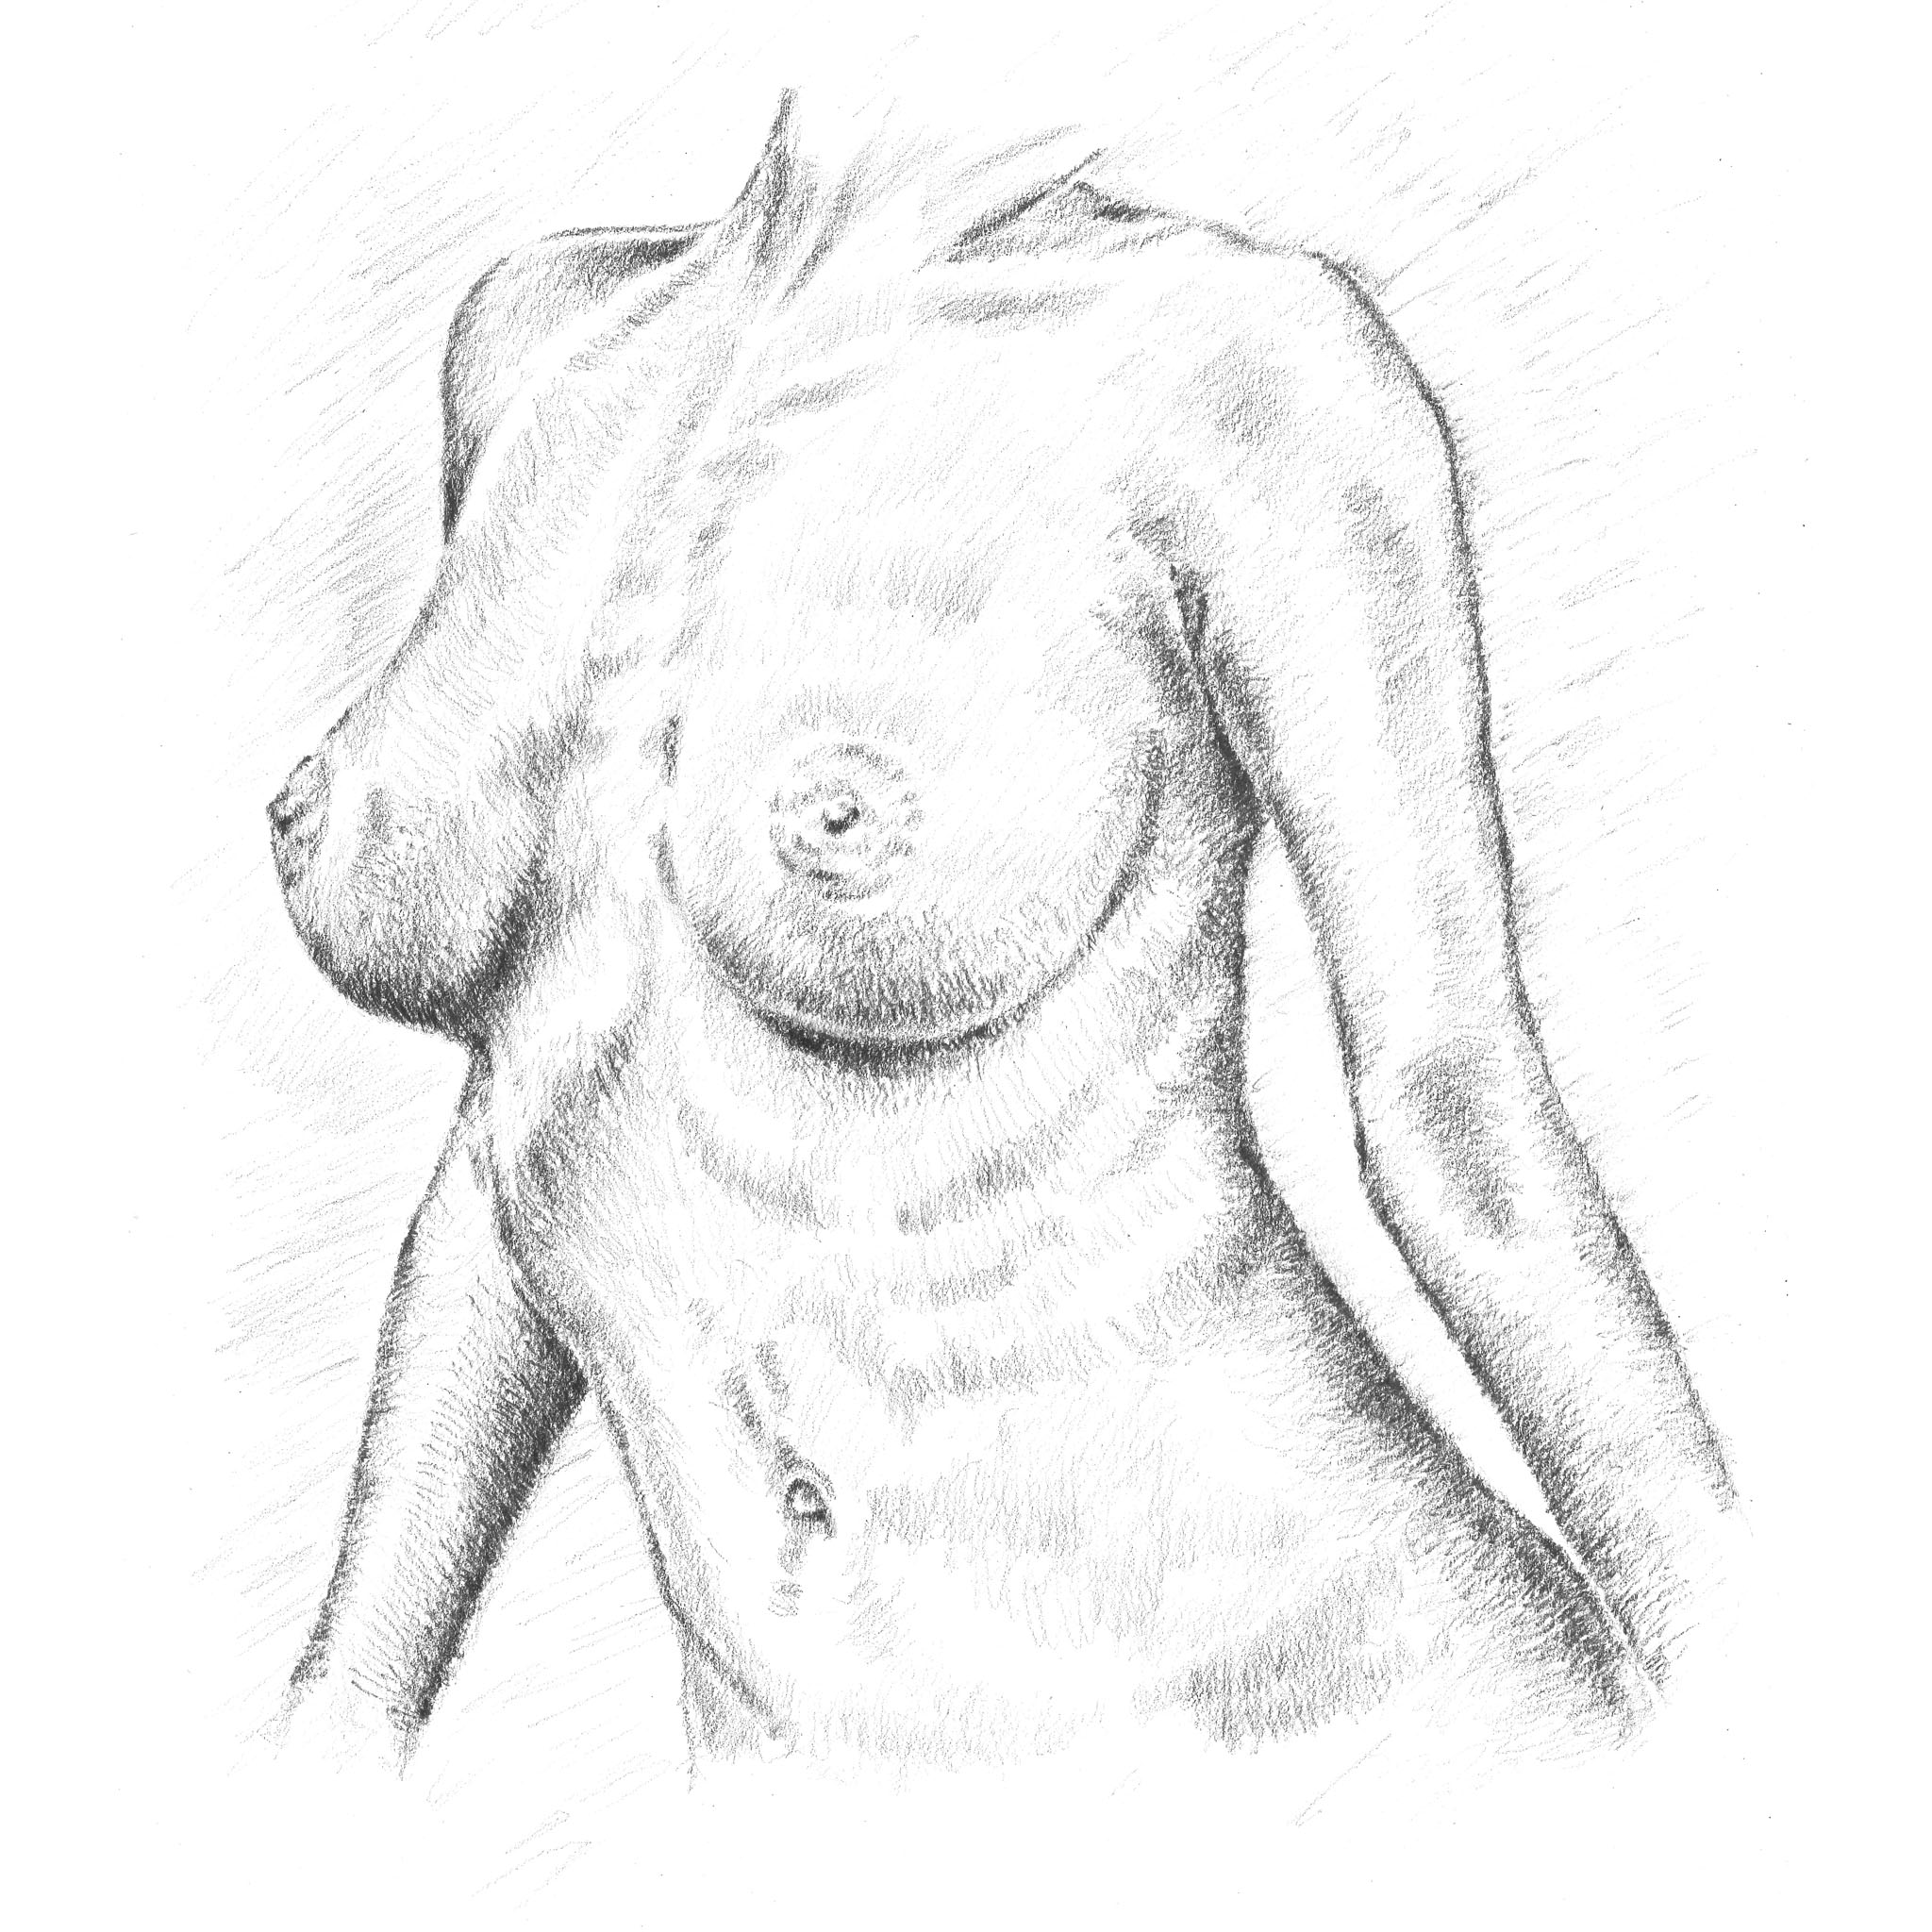 Breasts sketch